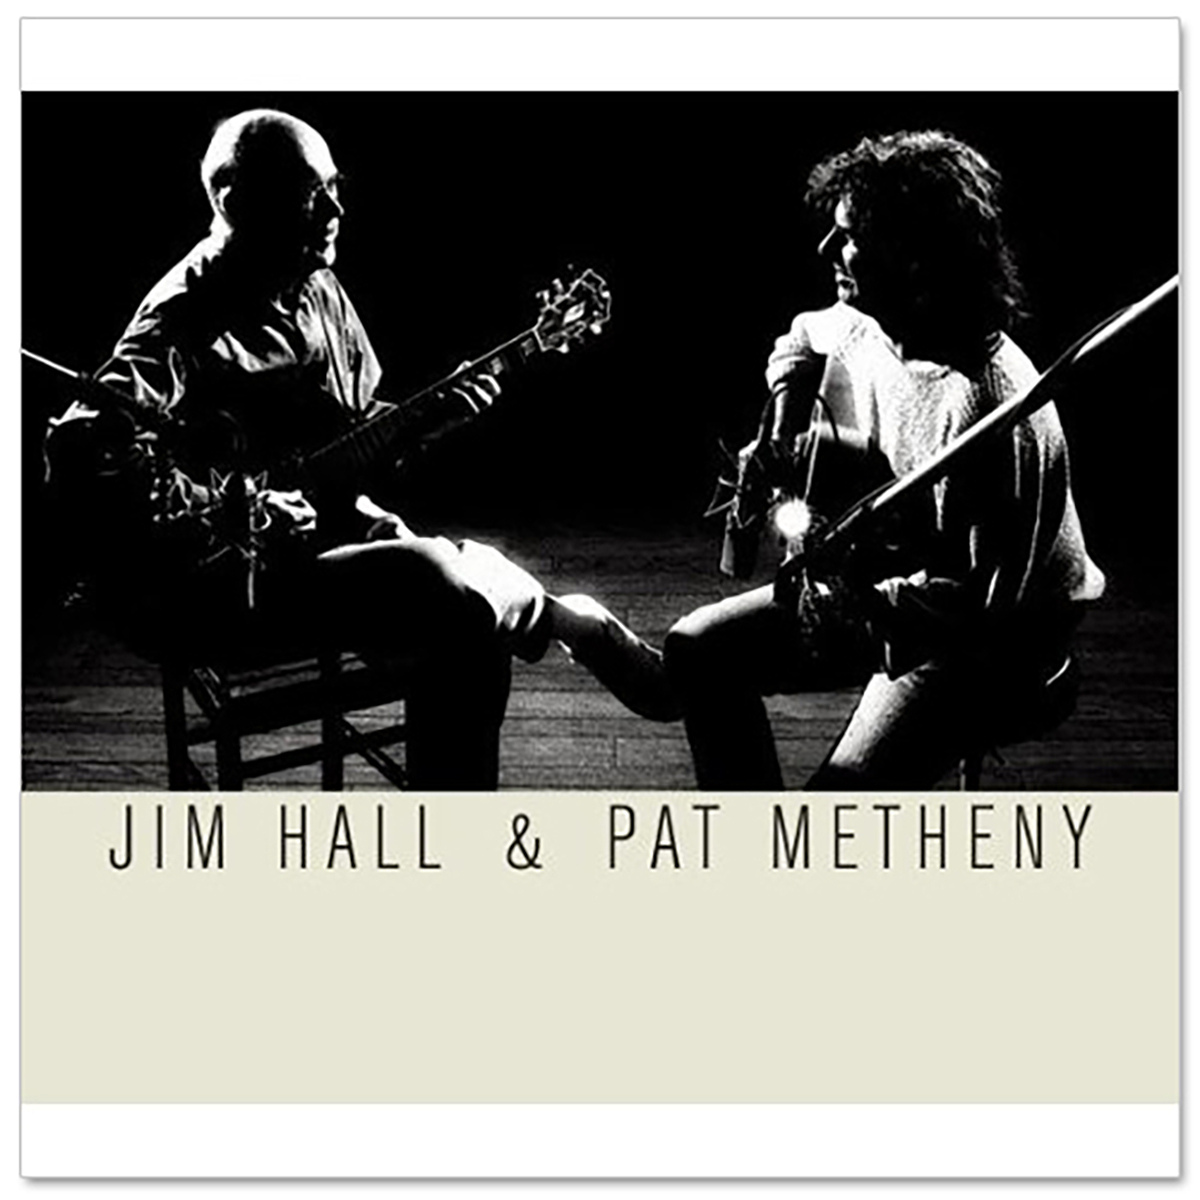 Jim Hall & Pat Metheny CD